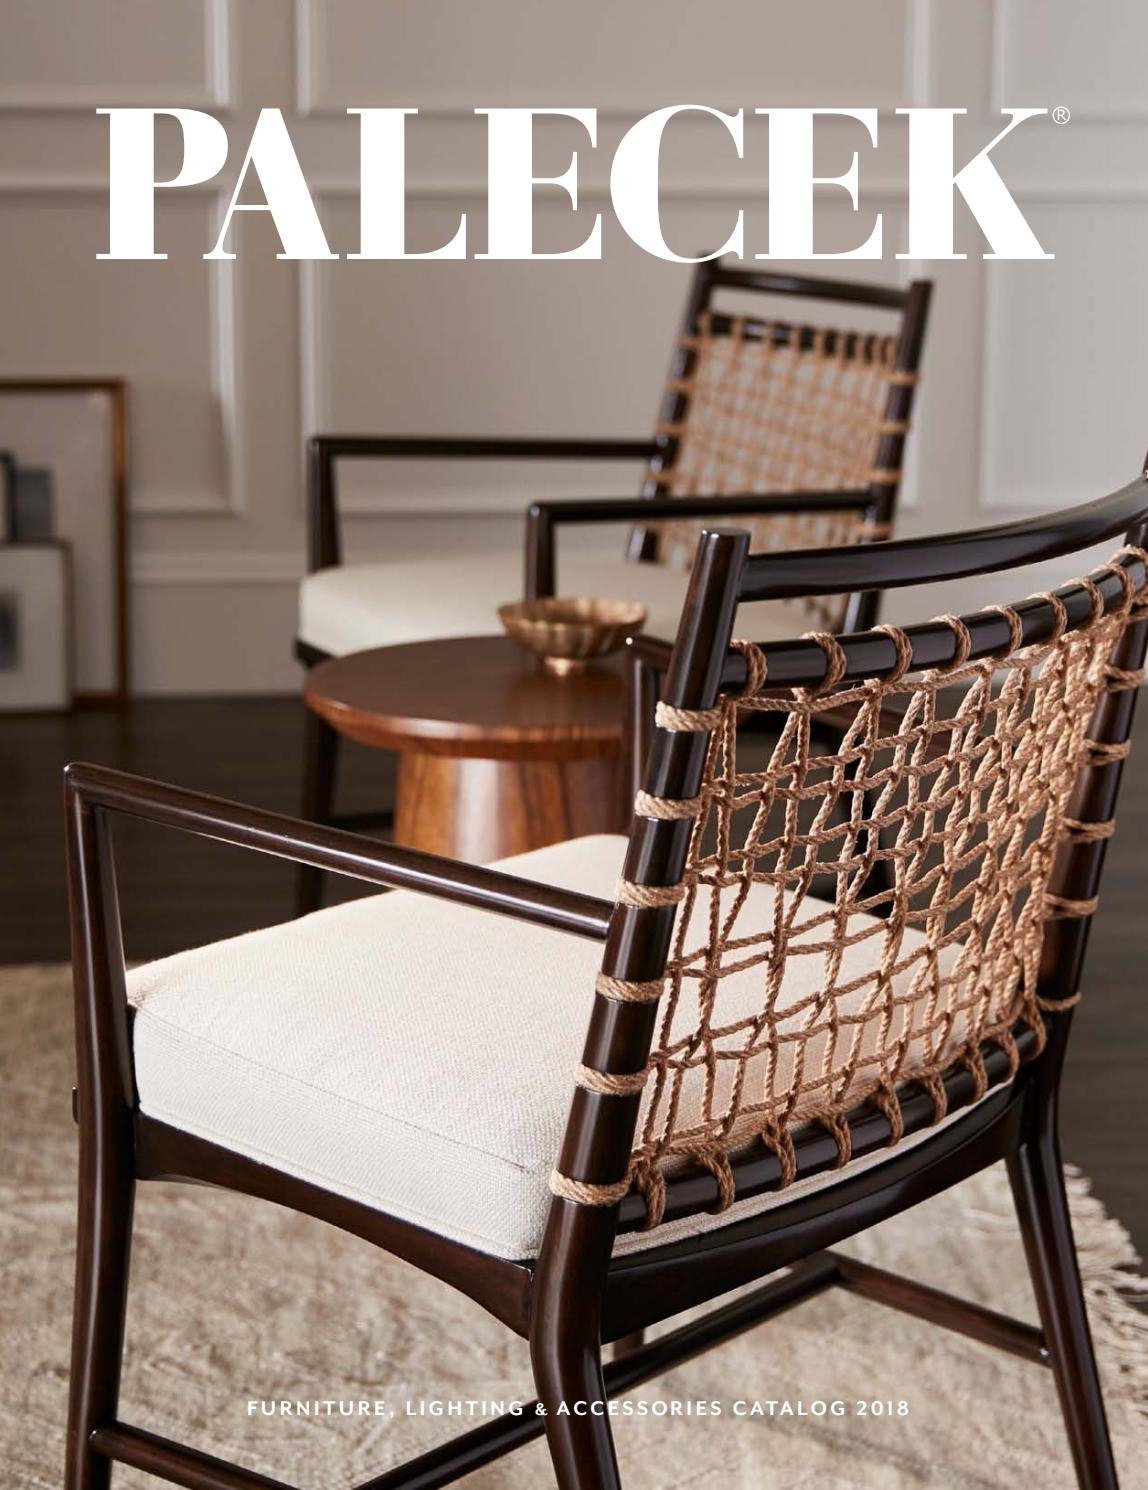 Palecek 2018 Furniture & Accessories Catalog With Madeline Vintage Bird Cast Iron Garden Benches (View 17 of 25)